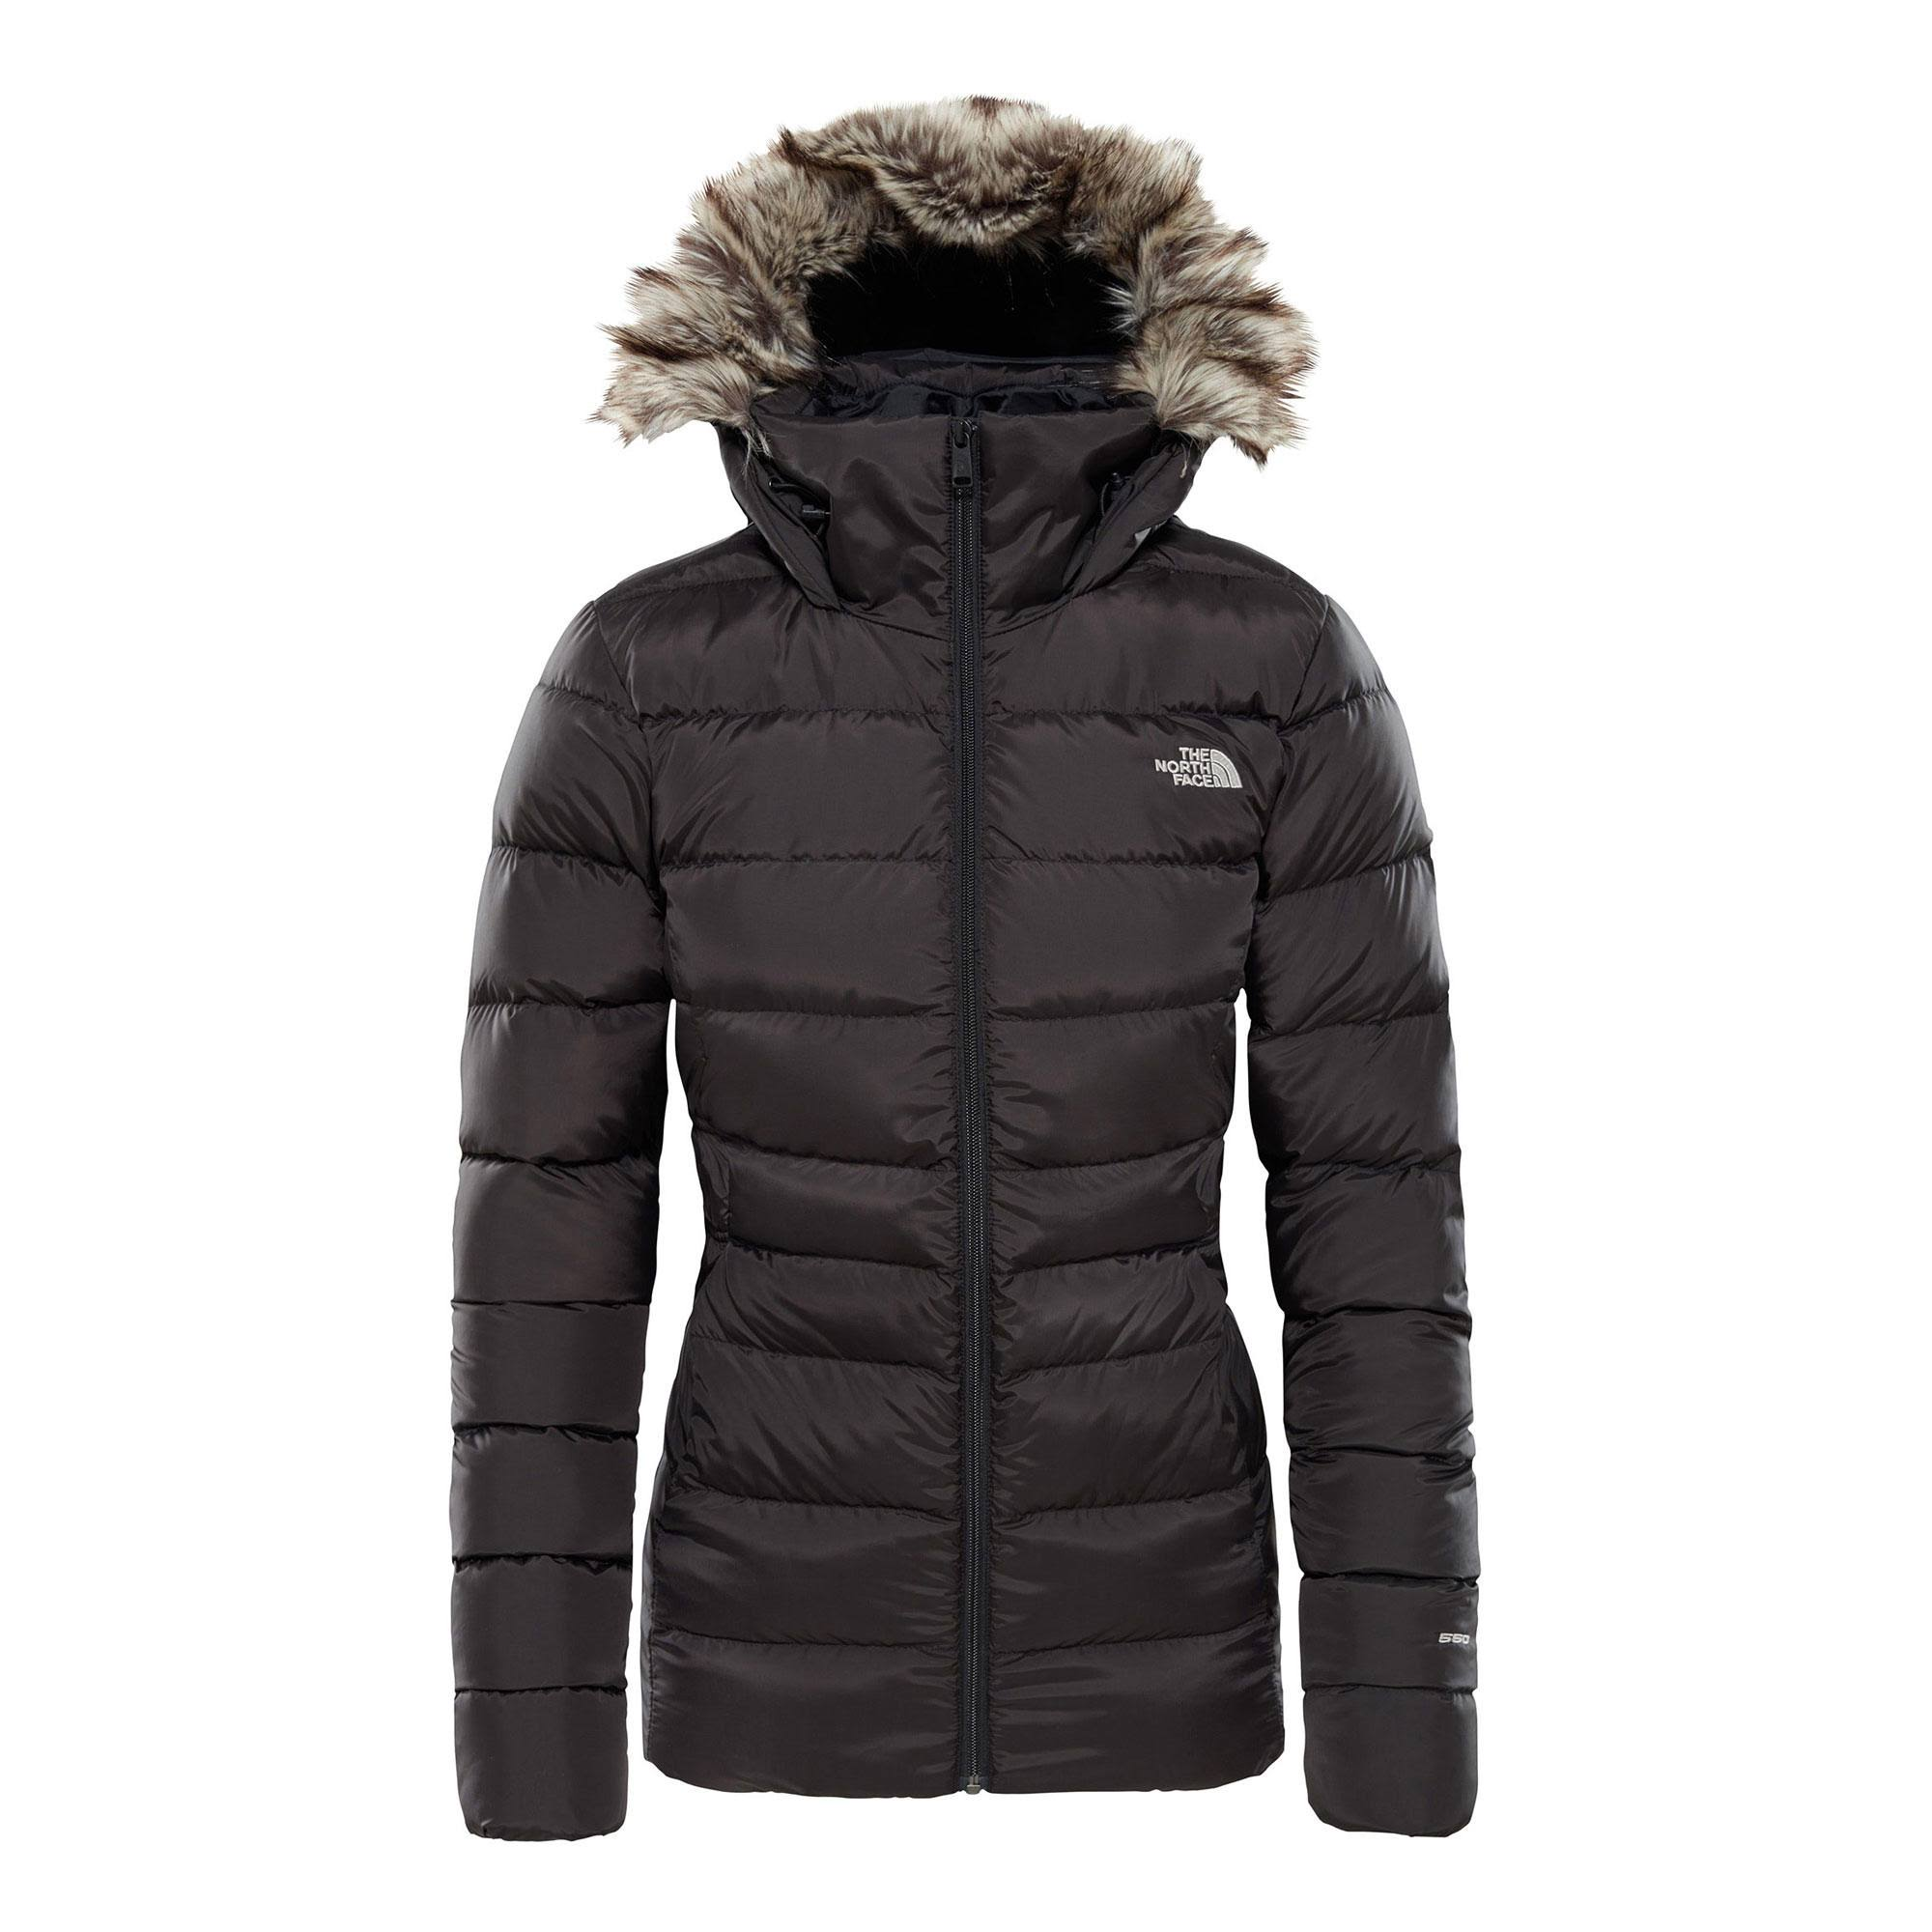 The North Face Women's Gotham II Jacket, Size: Large, Black